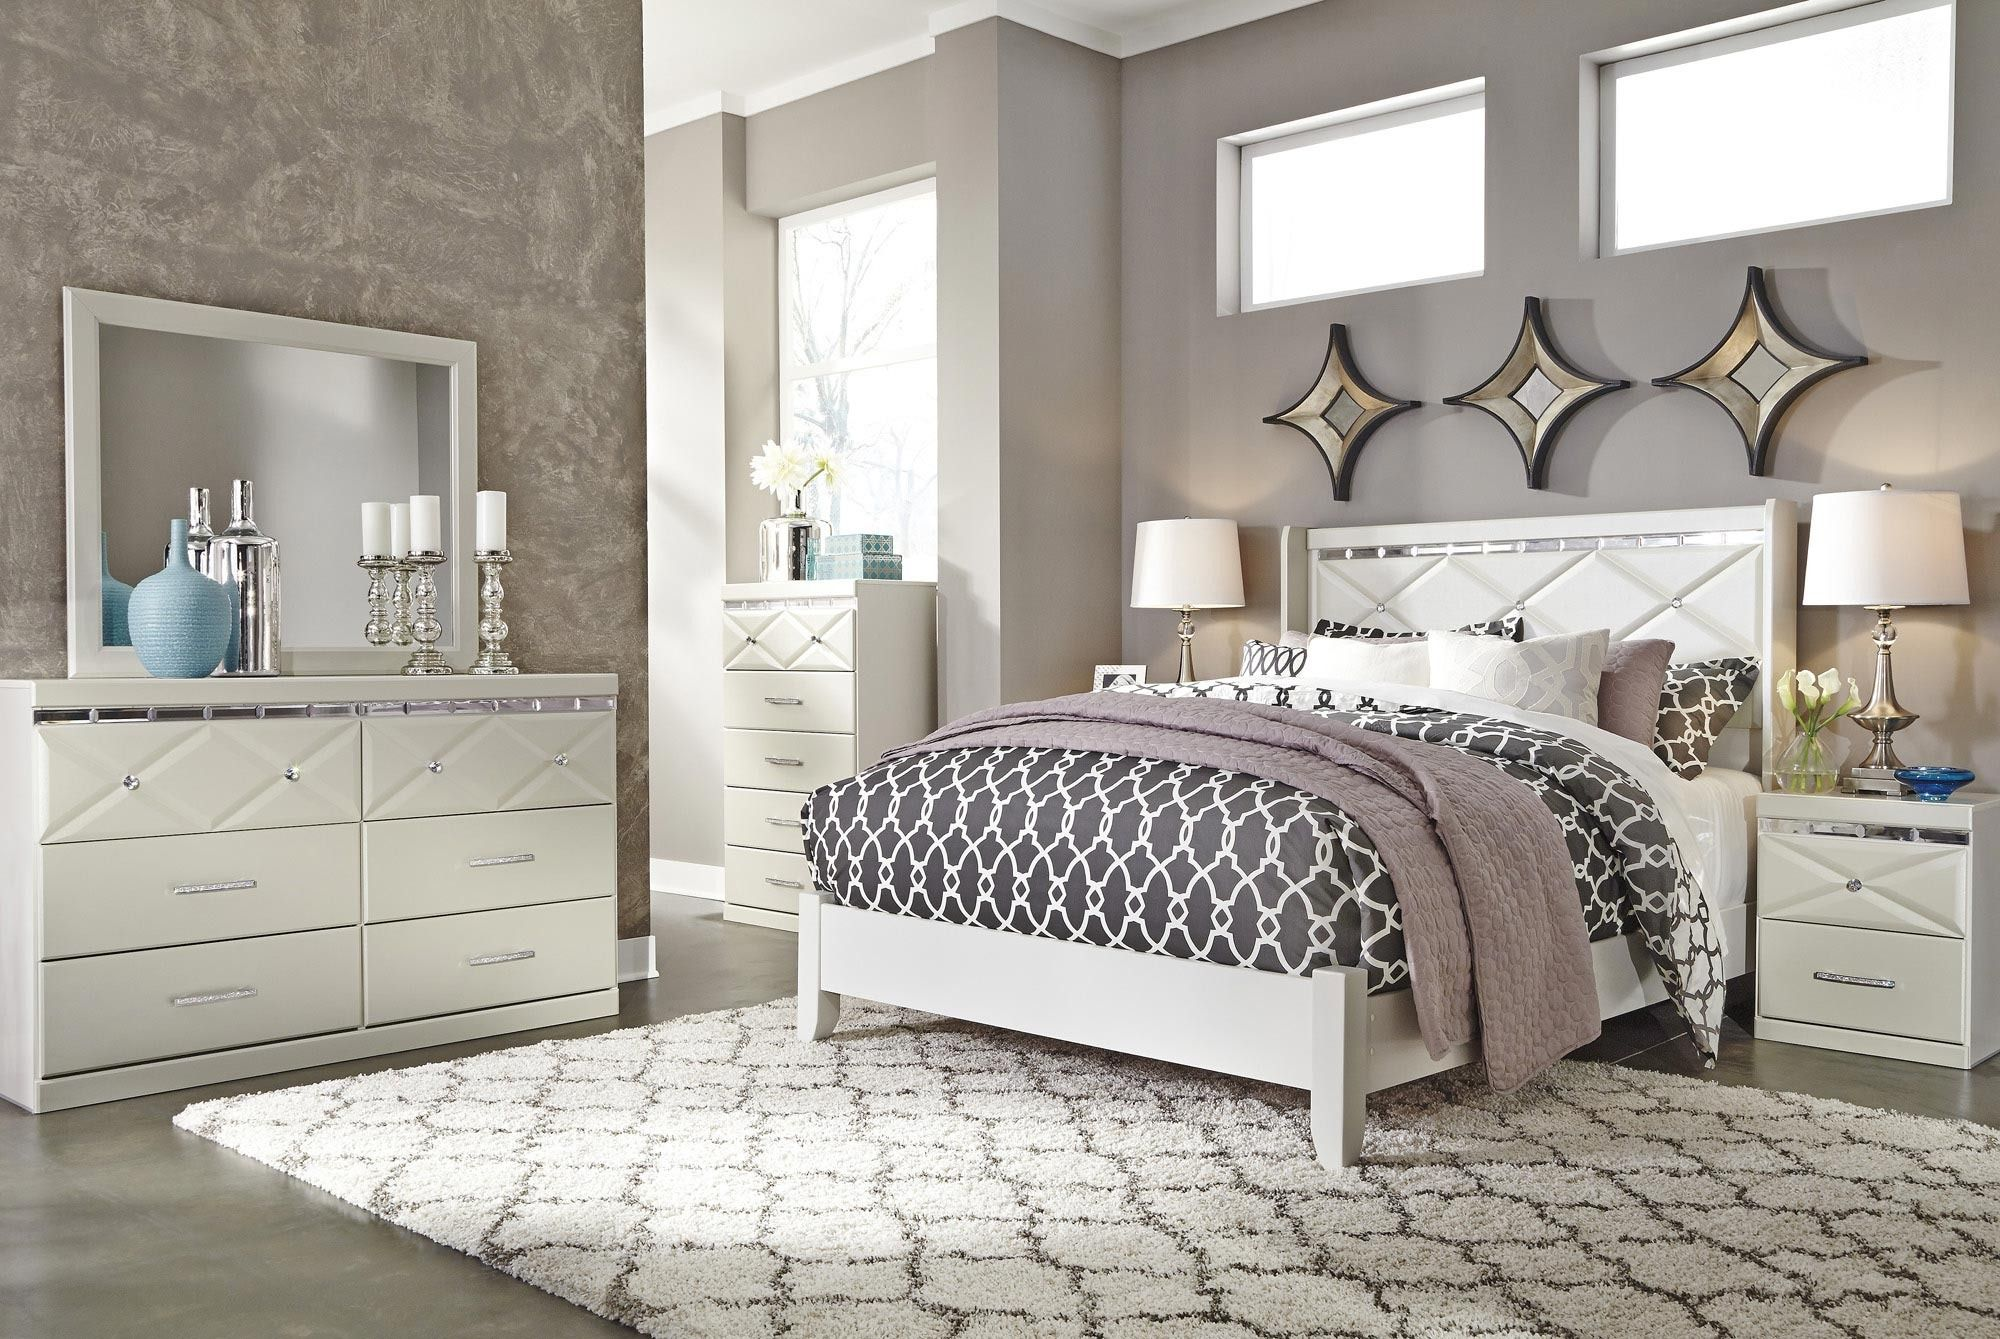 Dreamur Bedroom Set by Ashley - Home Gallery Stores | Bedroom ...